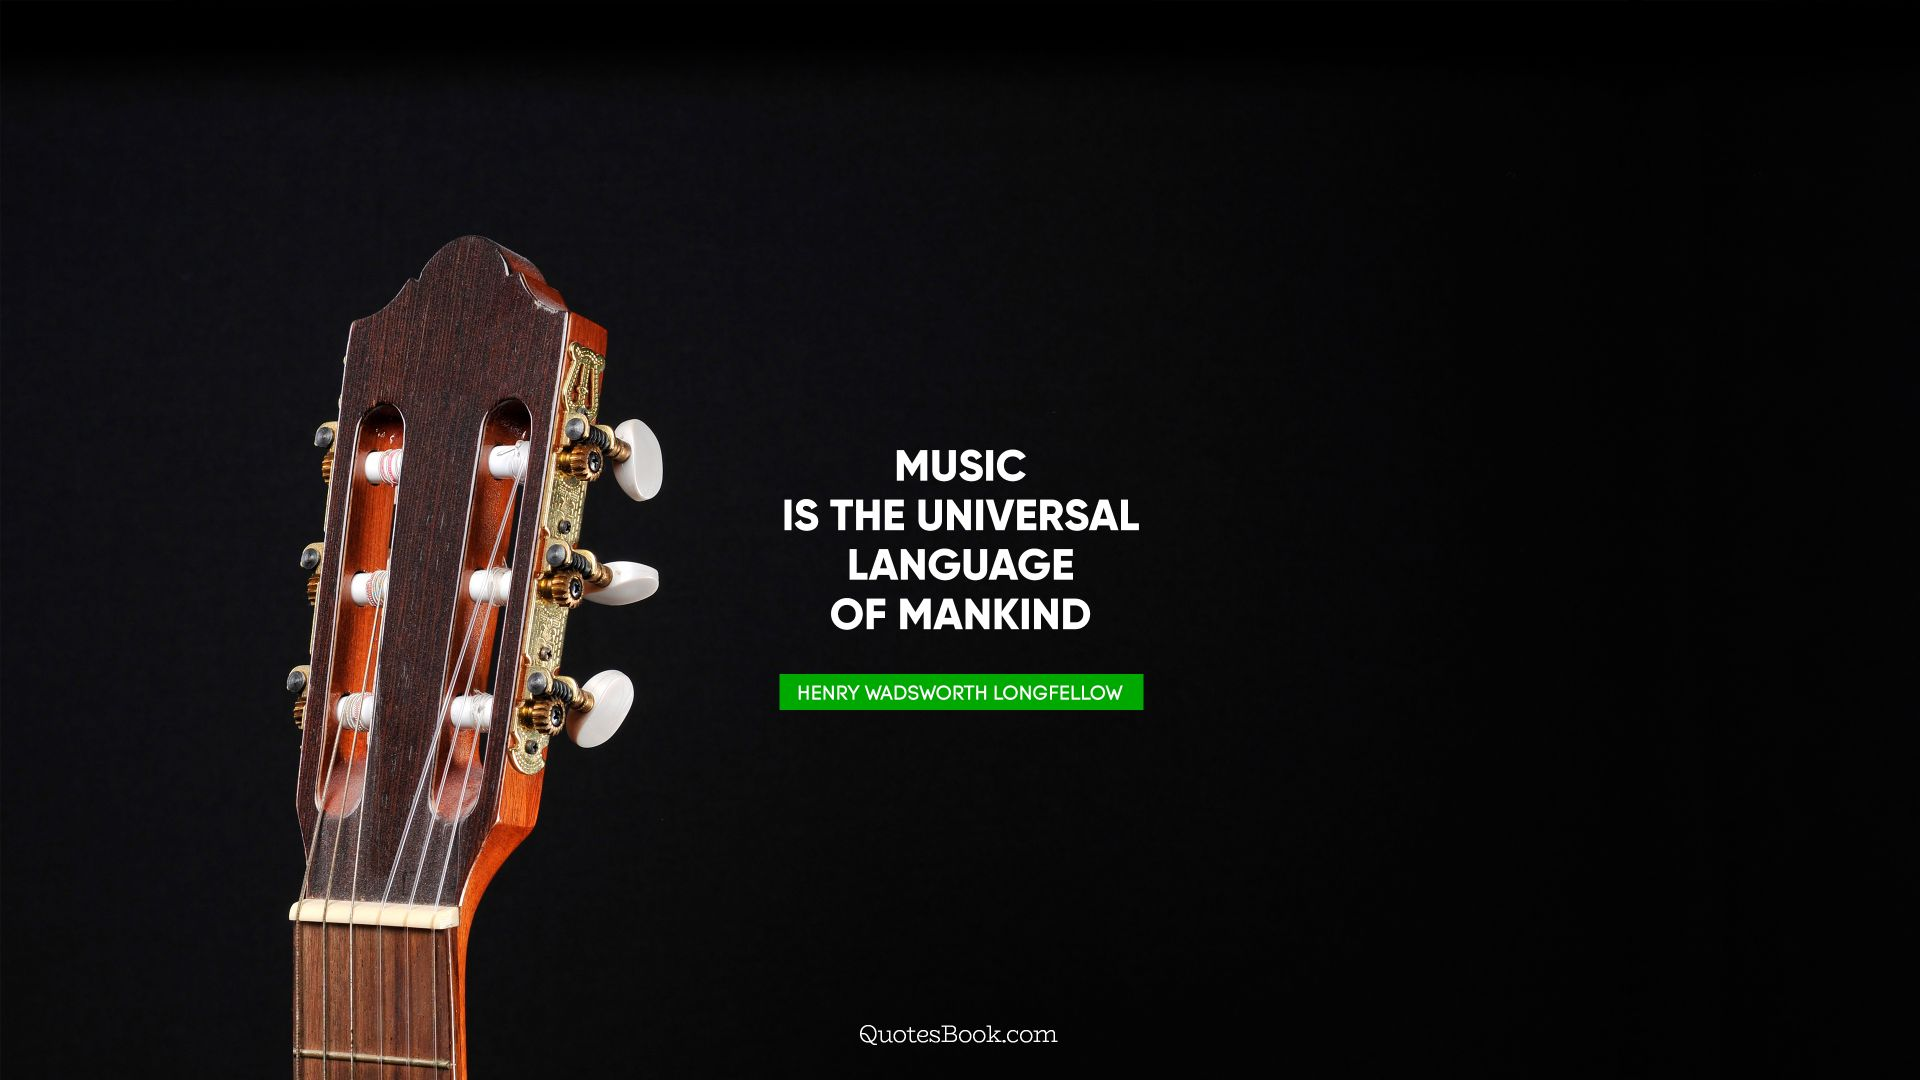 Music is the universal language of mankind. - Quote by Henry Wadsworth Longfellow